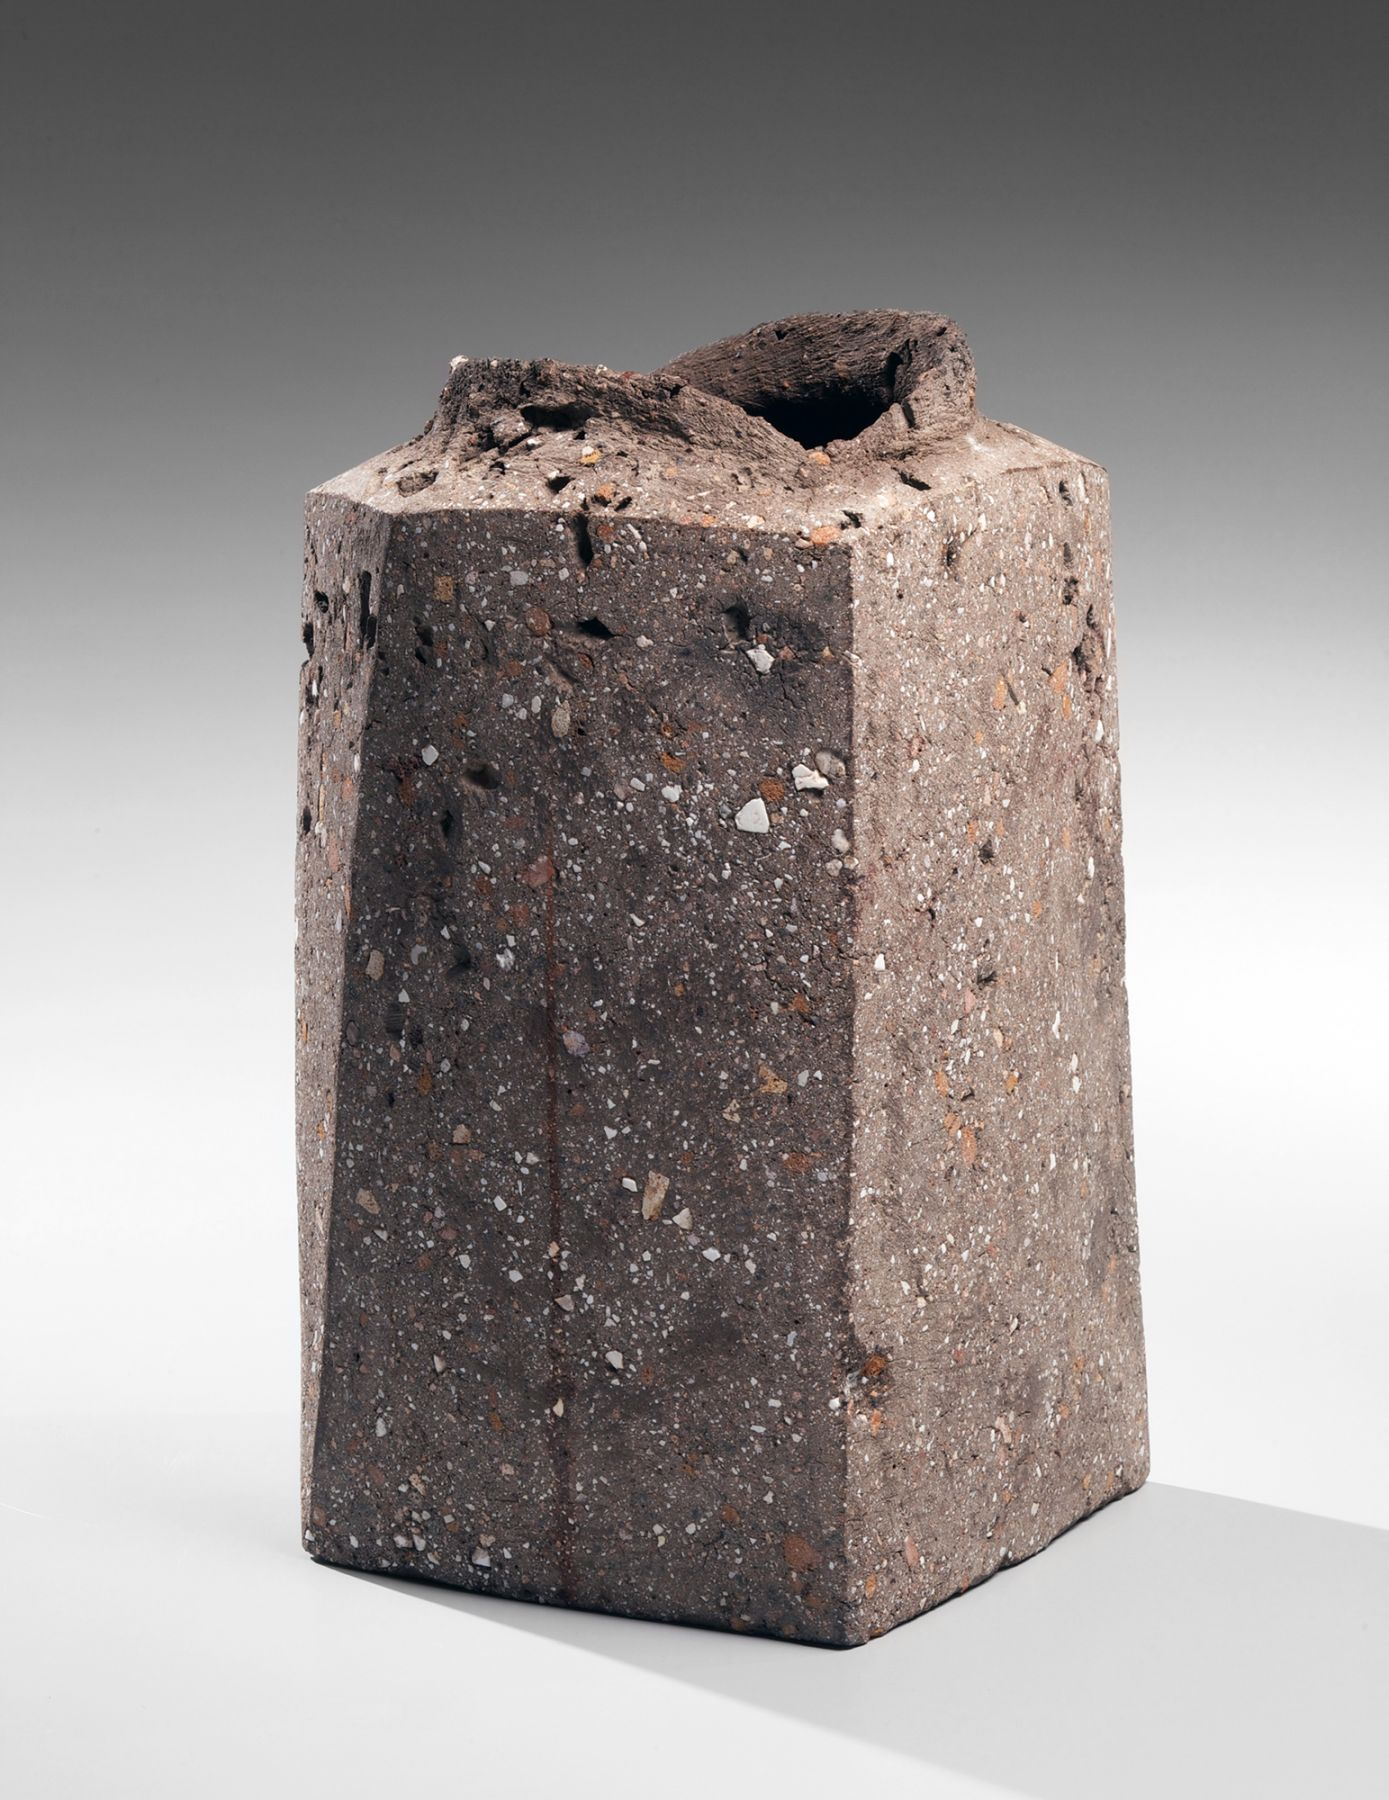 Ito, Sekisui, Ito Sekisui, standing, four-sided, faceted, vessel, grey, rough, raised, torn, mouth, imbedded, stone, brush, applied, iron, oxide, clay, slip, 2012, living national treasure, LNT, Japan, Japanese, Japanese art, contemporary, ceramics, contemporary ceramics, contemporary Japanese ceramics, art, new york, new york city, gallery, for sale, pottery